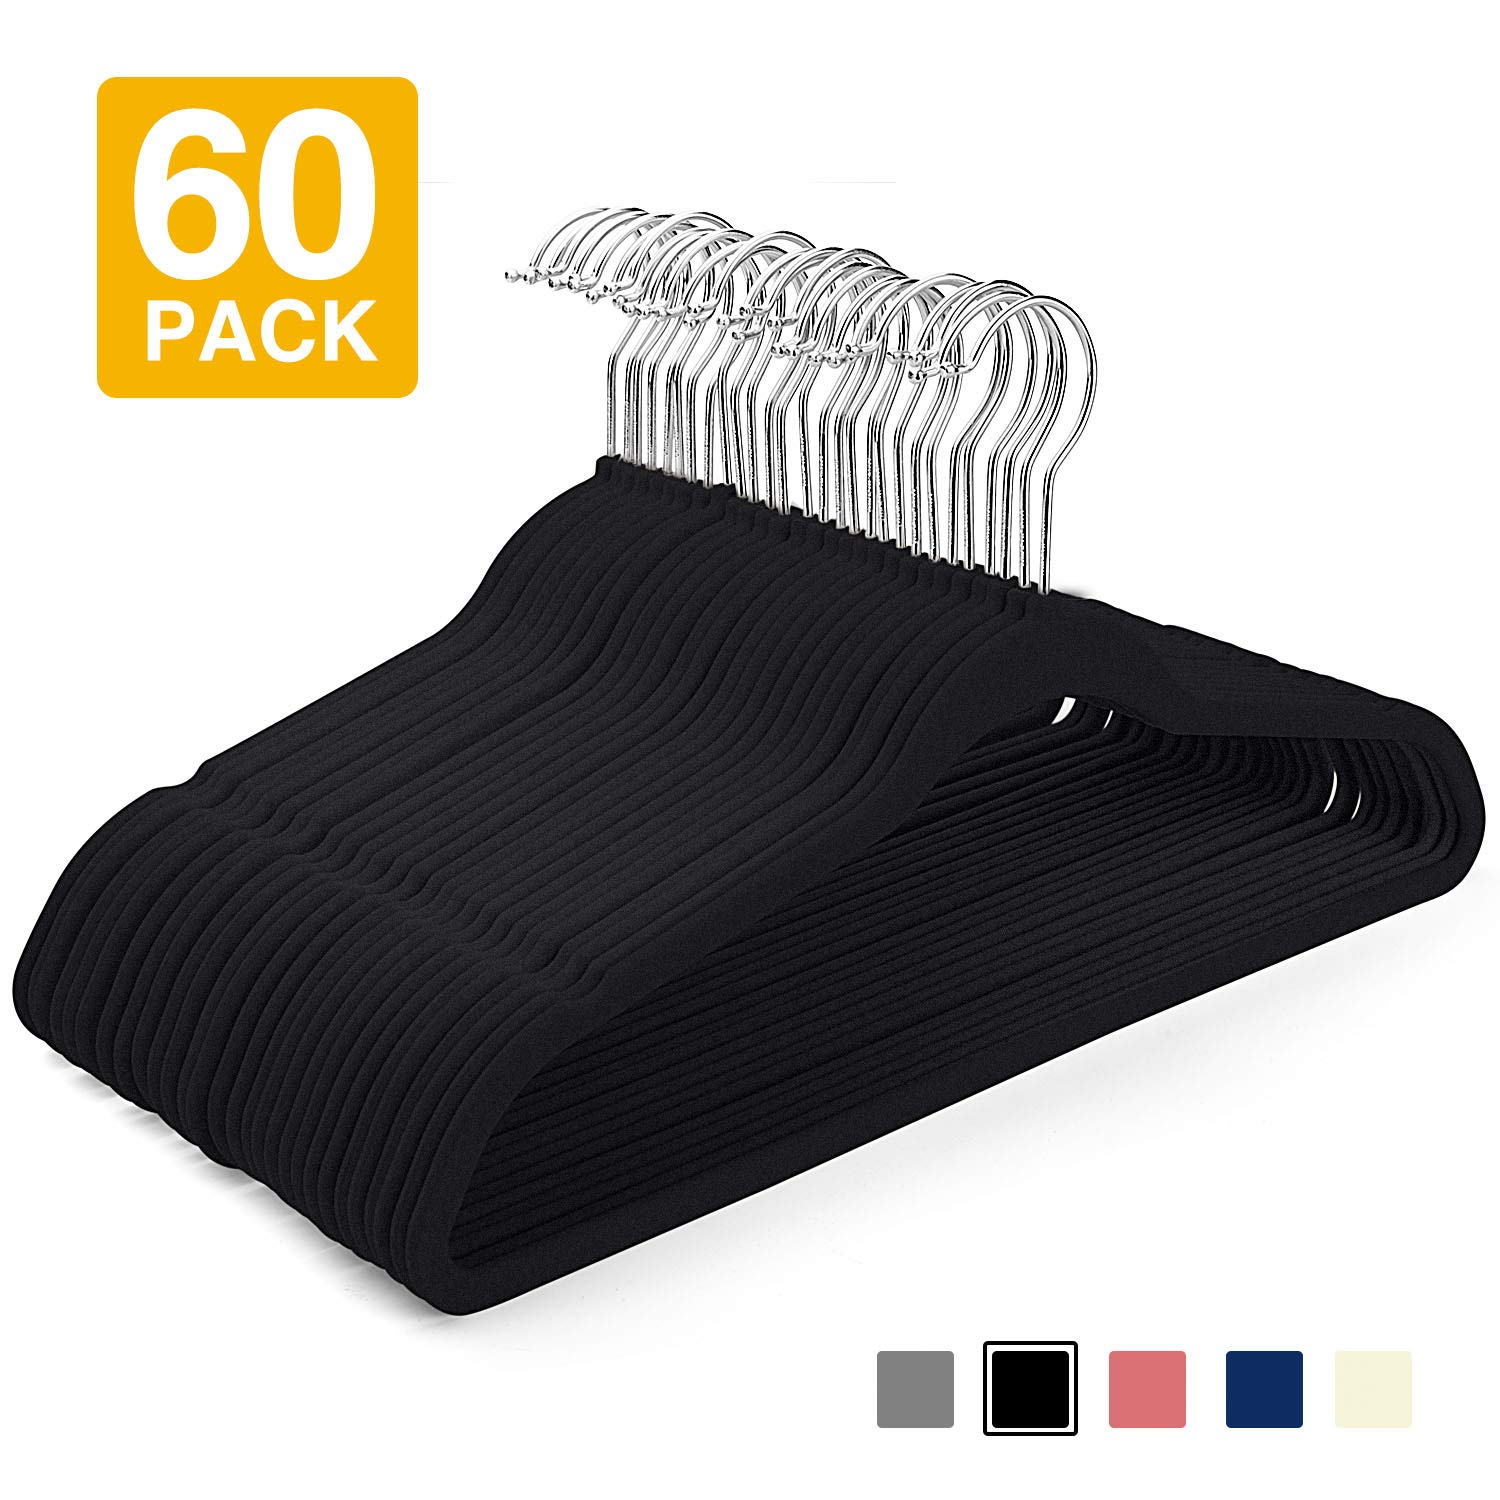 HOUSE DAY Velvet Hangers -60 Pack- Non Slip Velvet Suit Hangers Space Saving Clothes Hanger Velvet Hanger Heavy Duty Adult Hanger for Coat, Suit,Black by HOUSE DAY